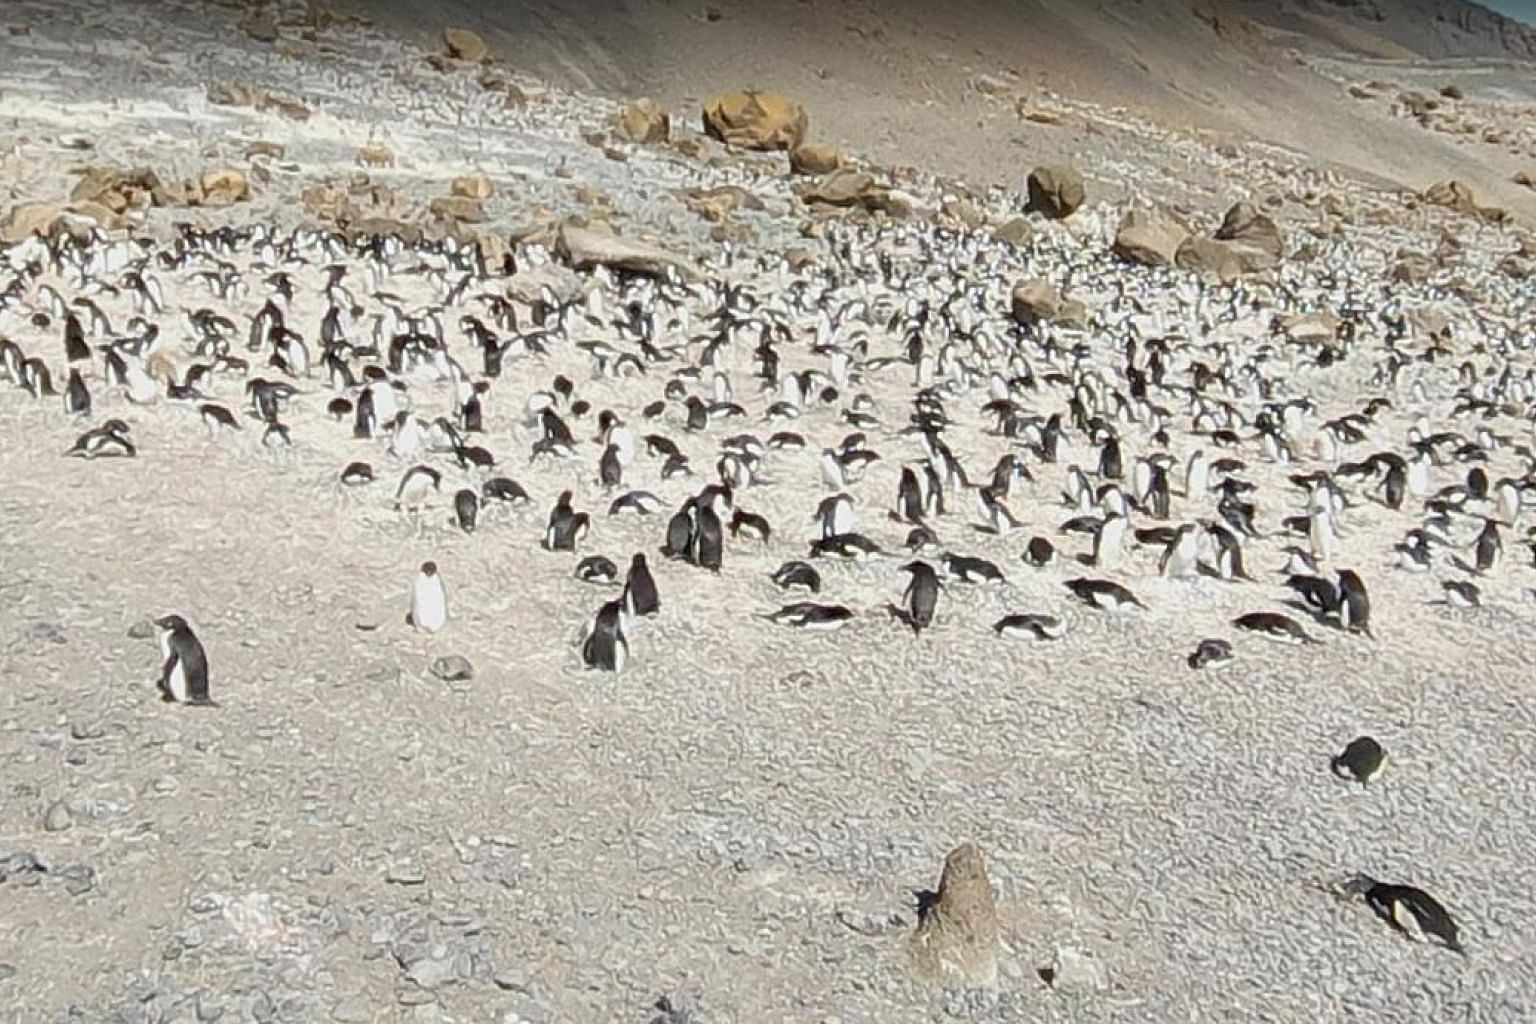 Adelie penguins (above) in Antarctica and sooty terns (below) in flight on Laysan Island, part of the Hawaiian chain of islands, are some of the birding possibilities on offer via Google Street View. Virtual birdwatching may be more comfortable, but